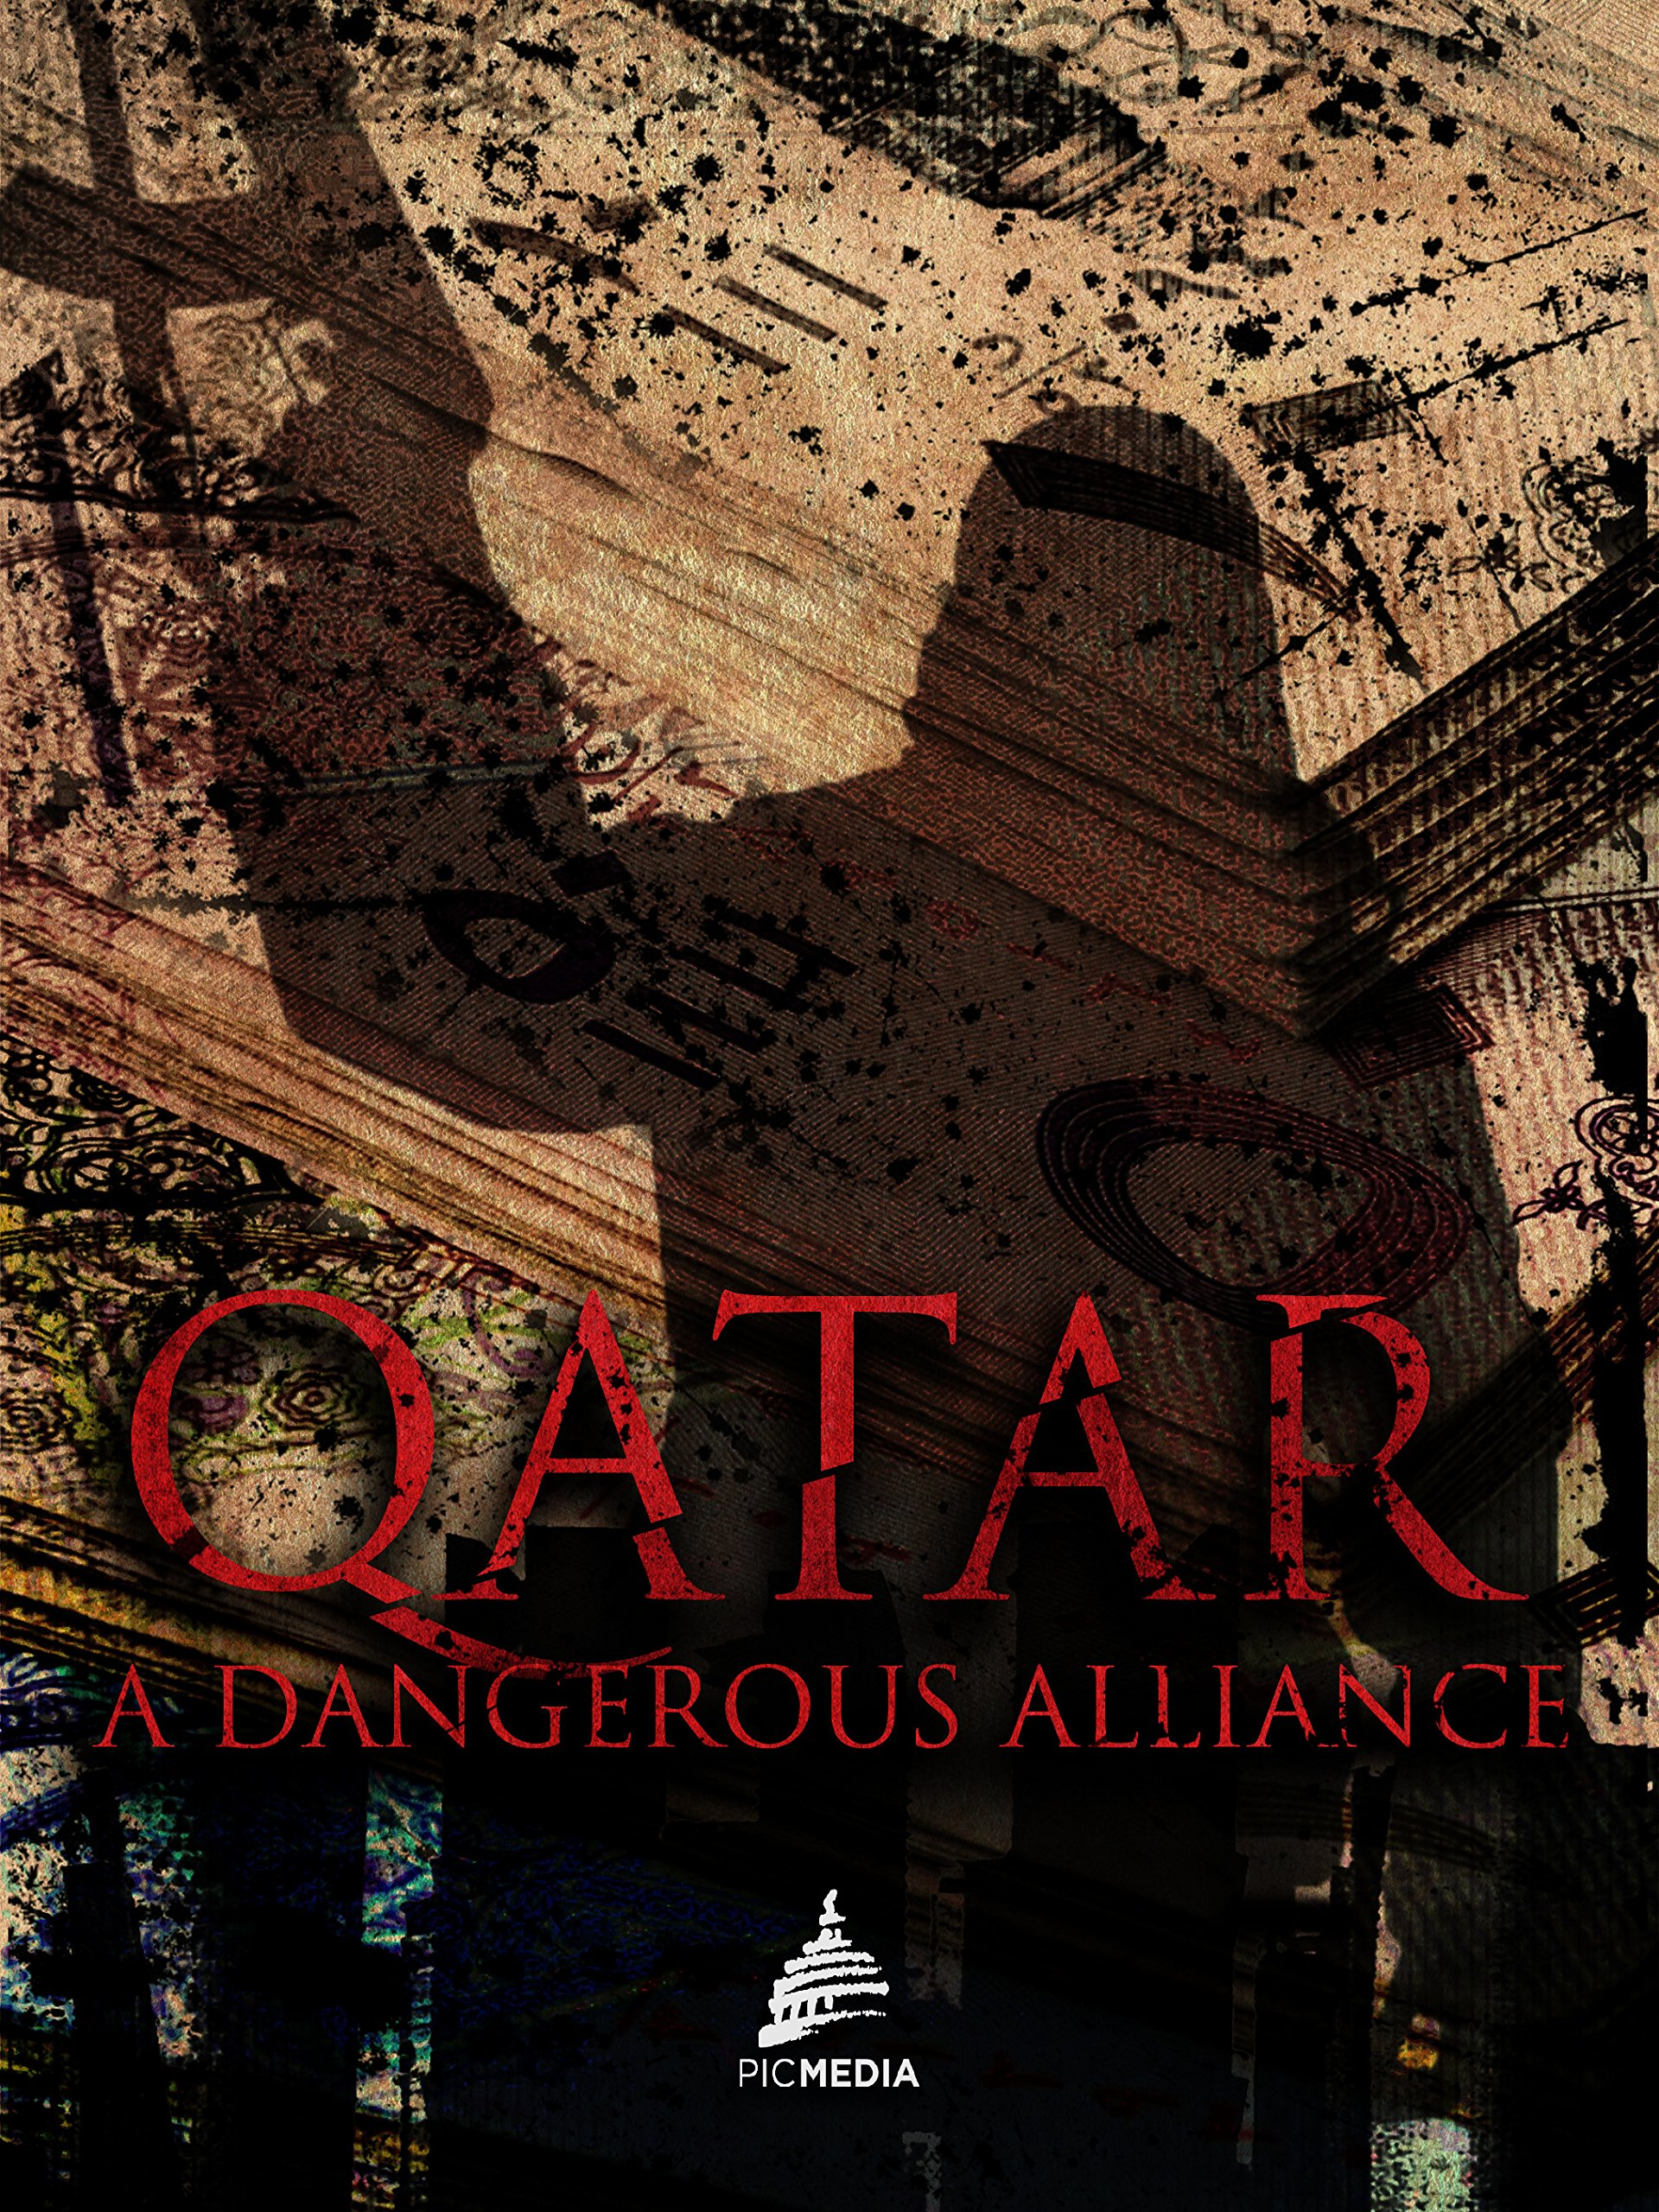 Qatar: A Dangerous Alliance